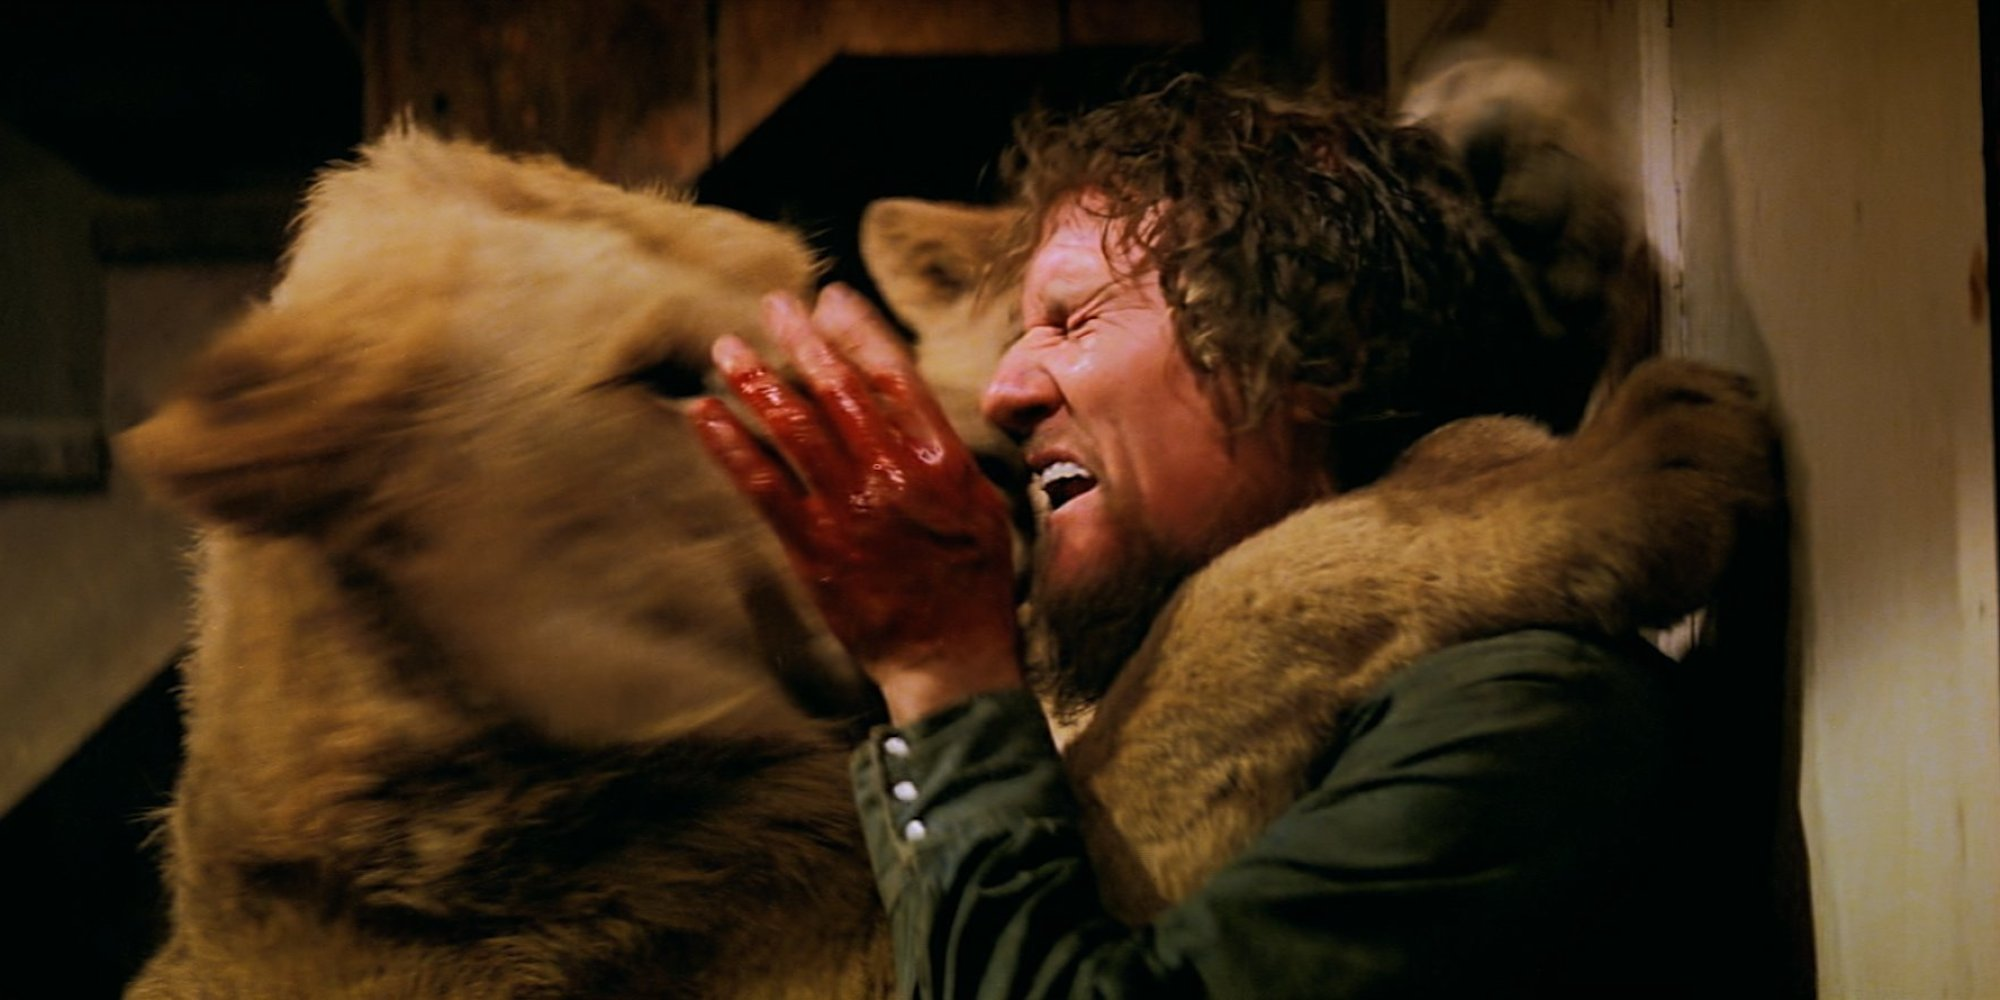 Roar (1981) Review: The Most Dangerous Film Ever Made